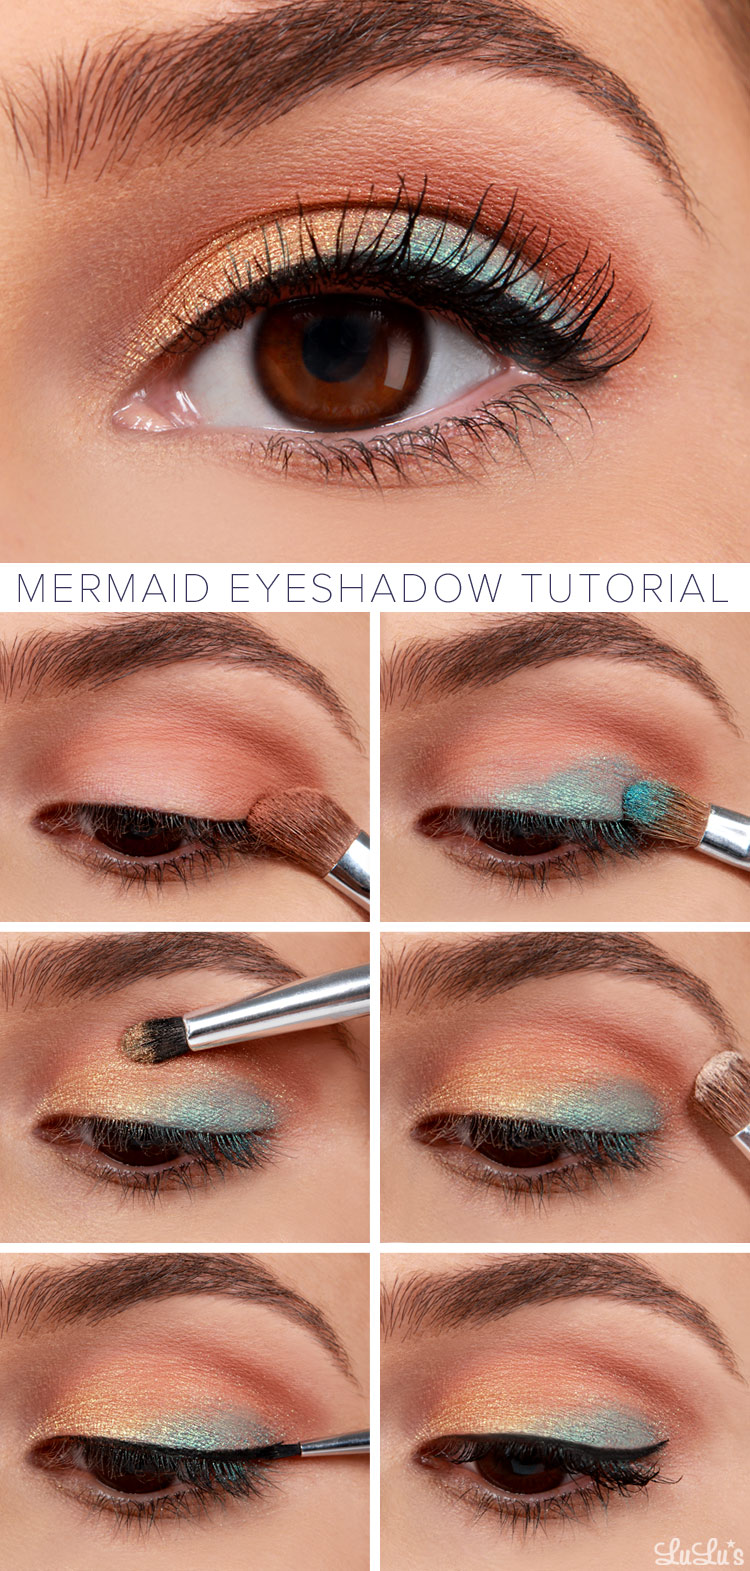 12 Step By Step Makeup Tutorials For A Night Out